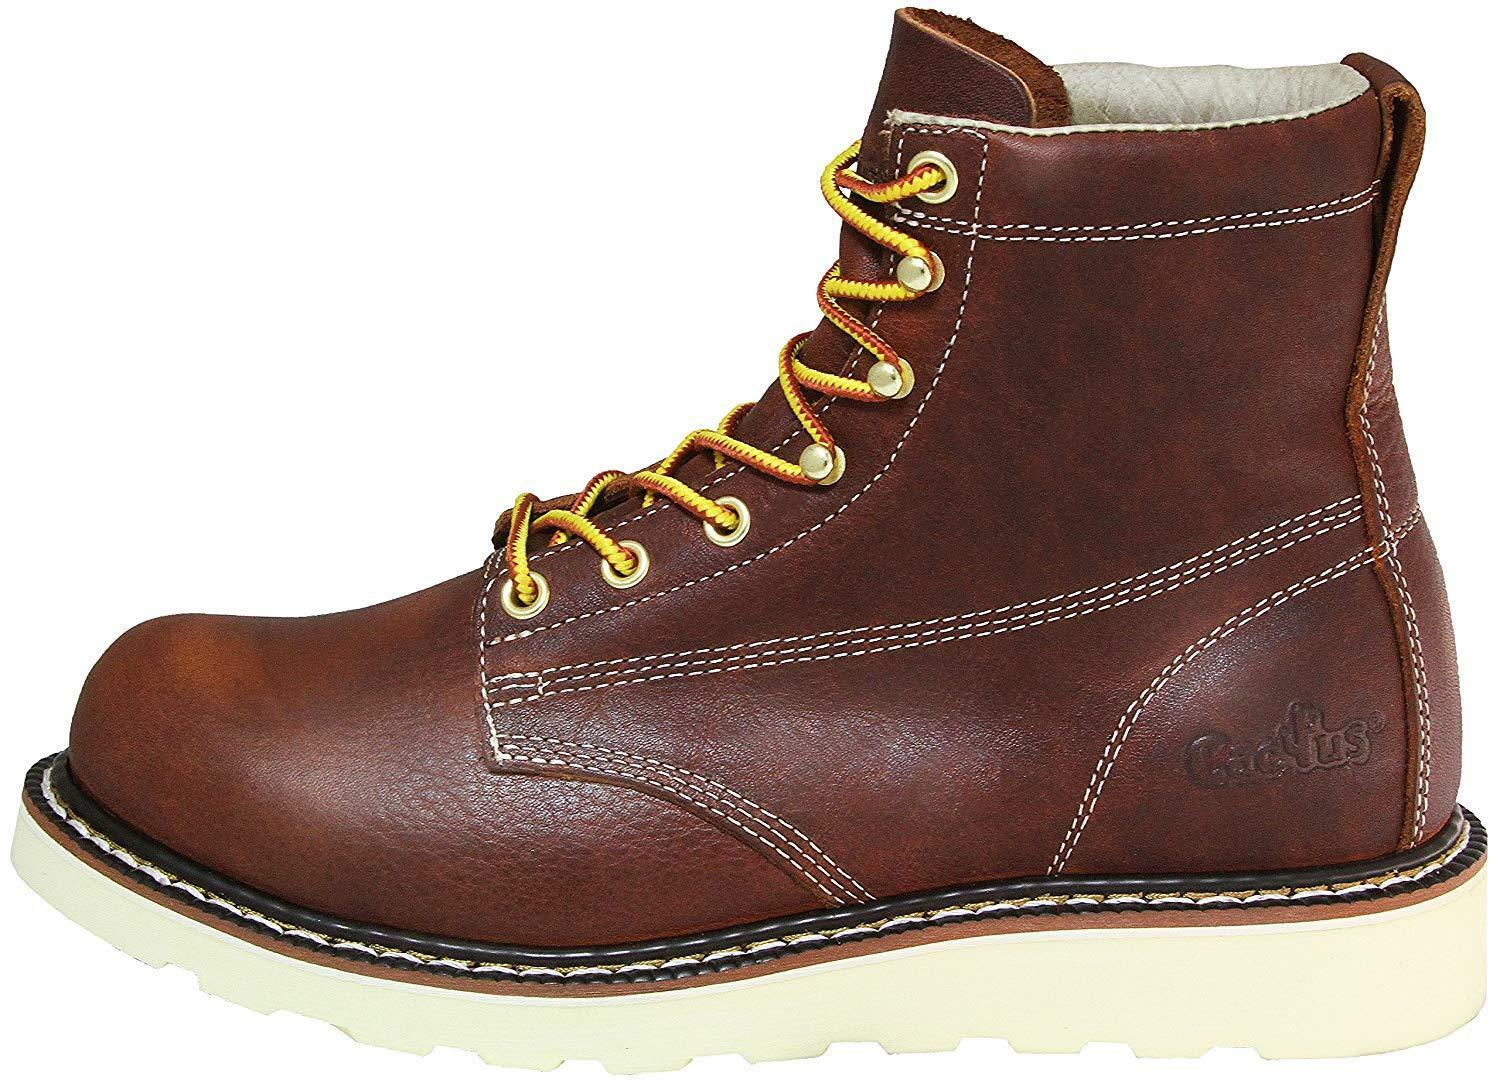 CACT CACT CACT  WORK BOOTS 6070 BROWN 100% LEATHER LIGHT WEIGHT NEW IN BOX da1808